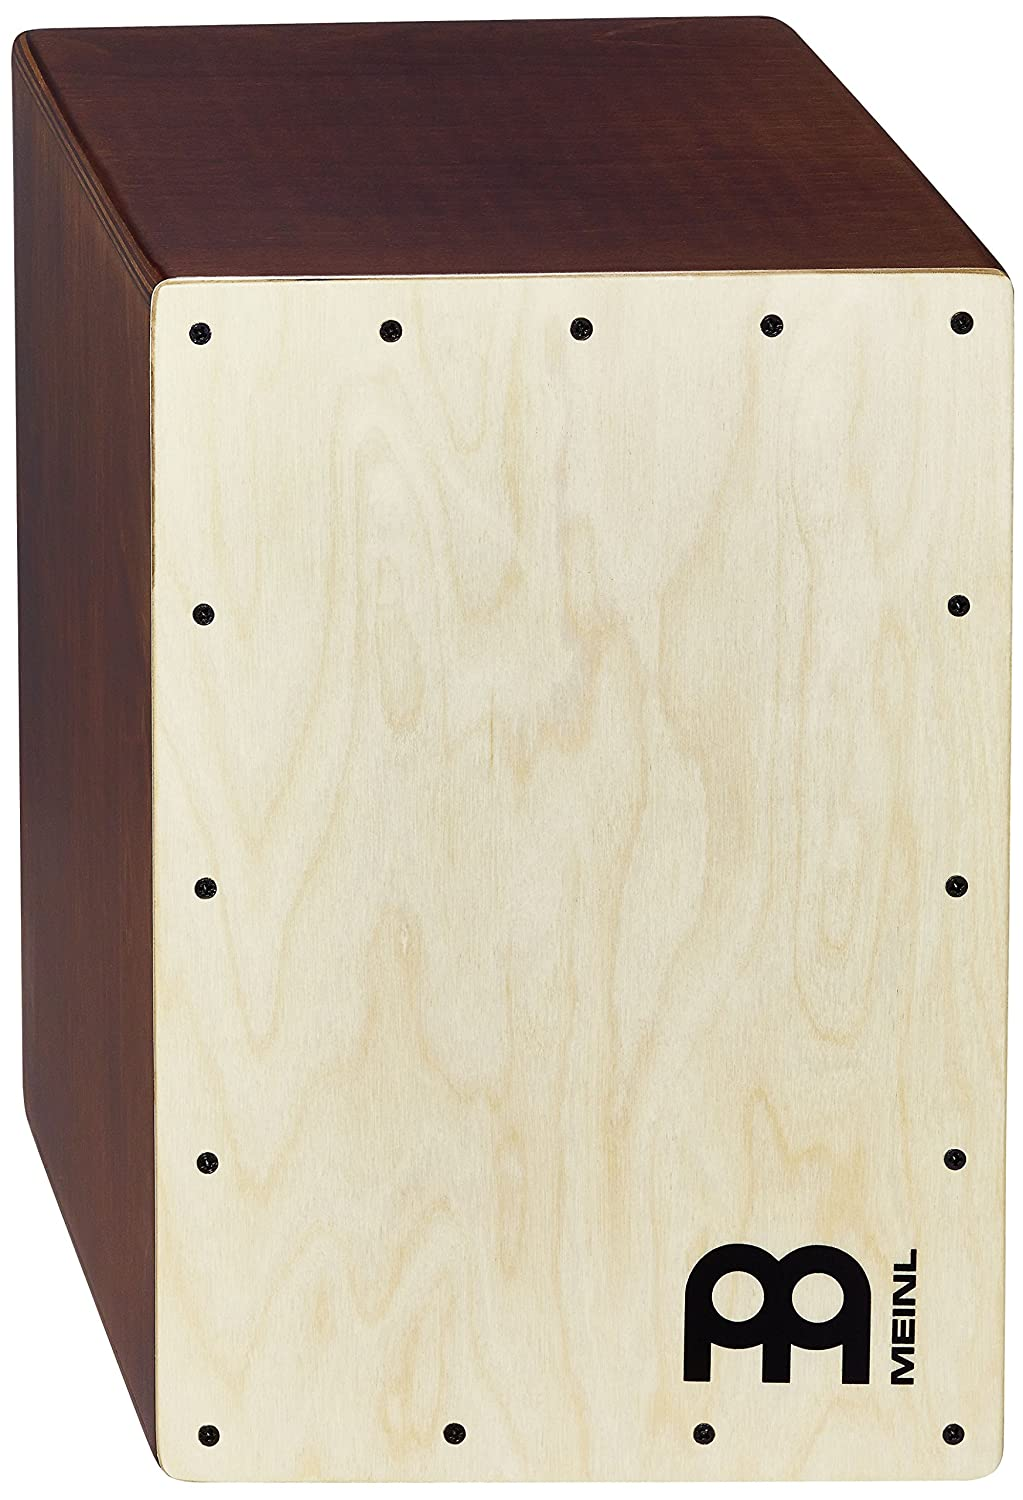 Meinl Percussion JC50LBNT Birch Wood Compact Jam Cajon with Internal Snares, Light Brown